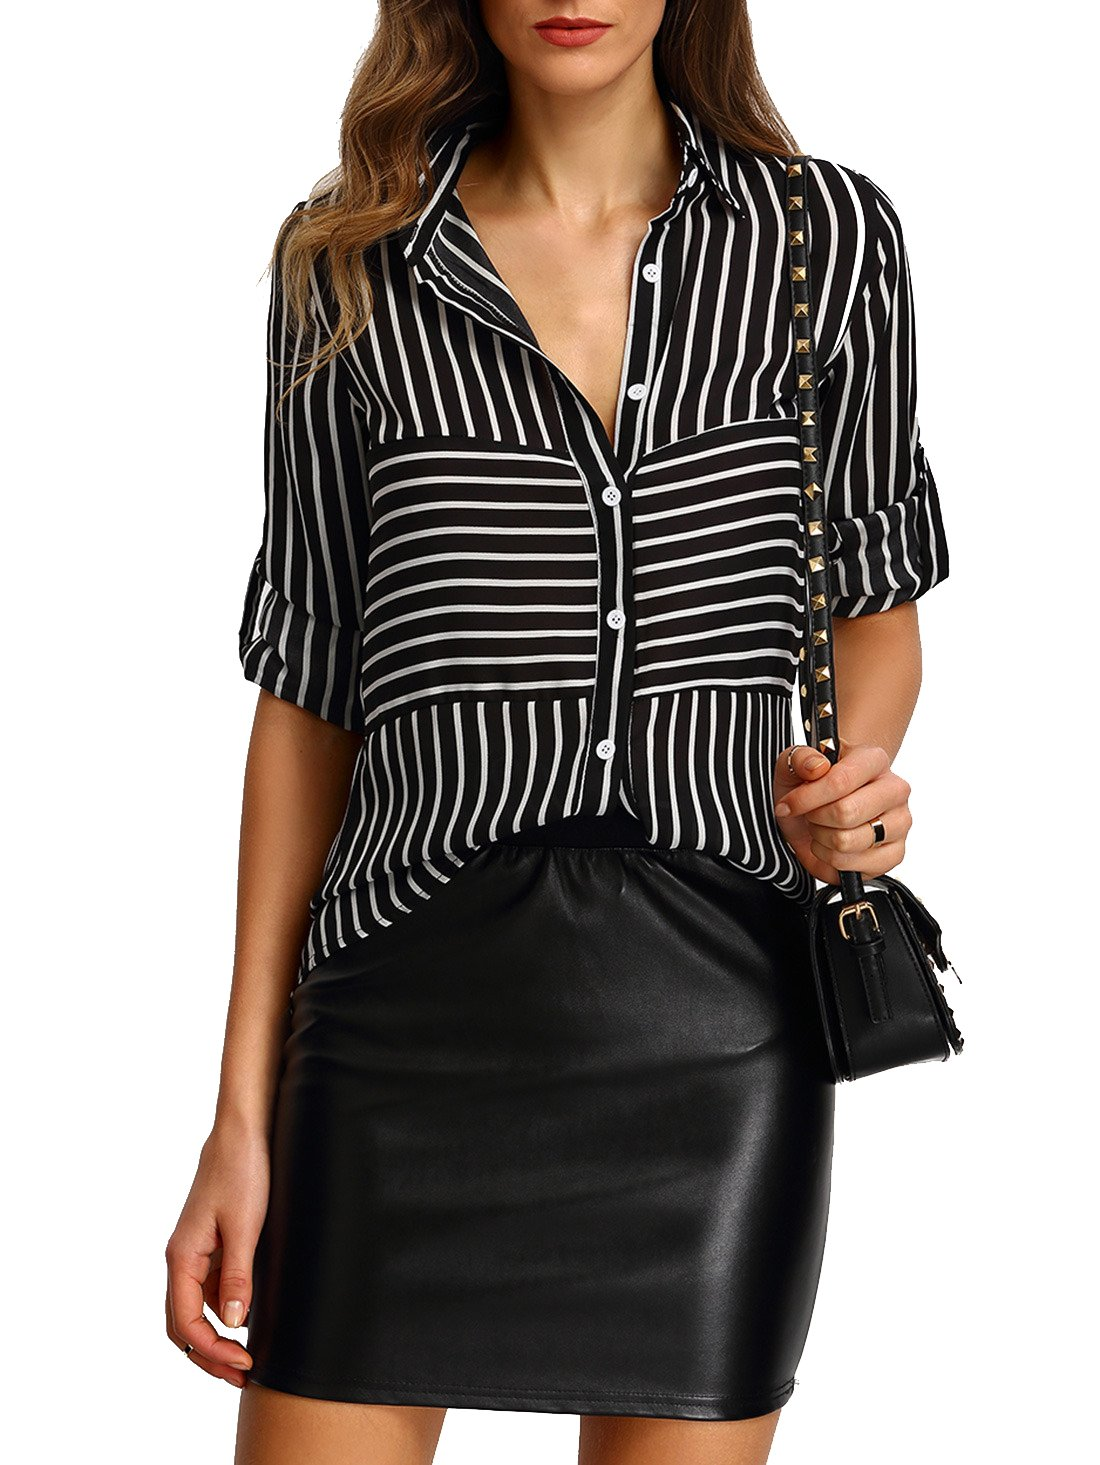 SheIn Women's Casual Chiffon Long Sleeve Striped Buttons Blouse Tops Small Black